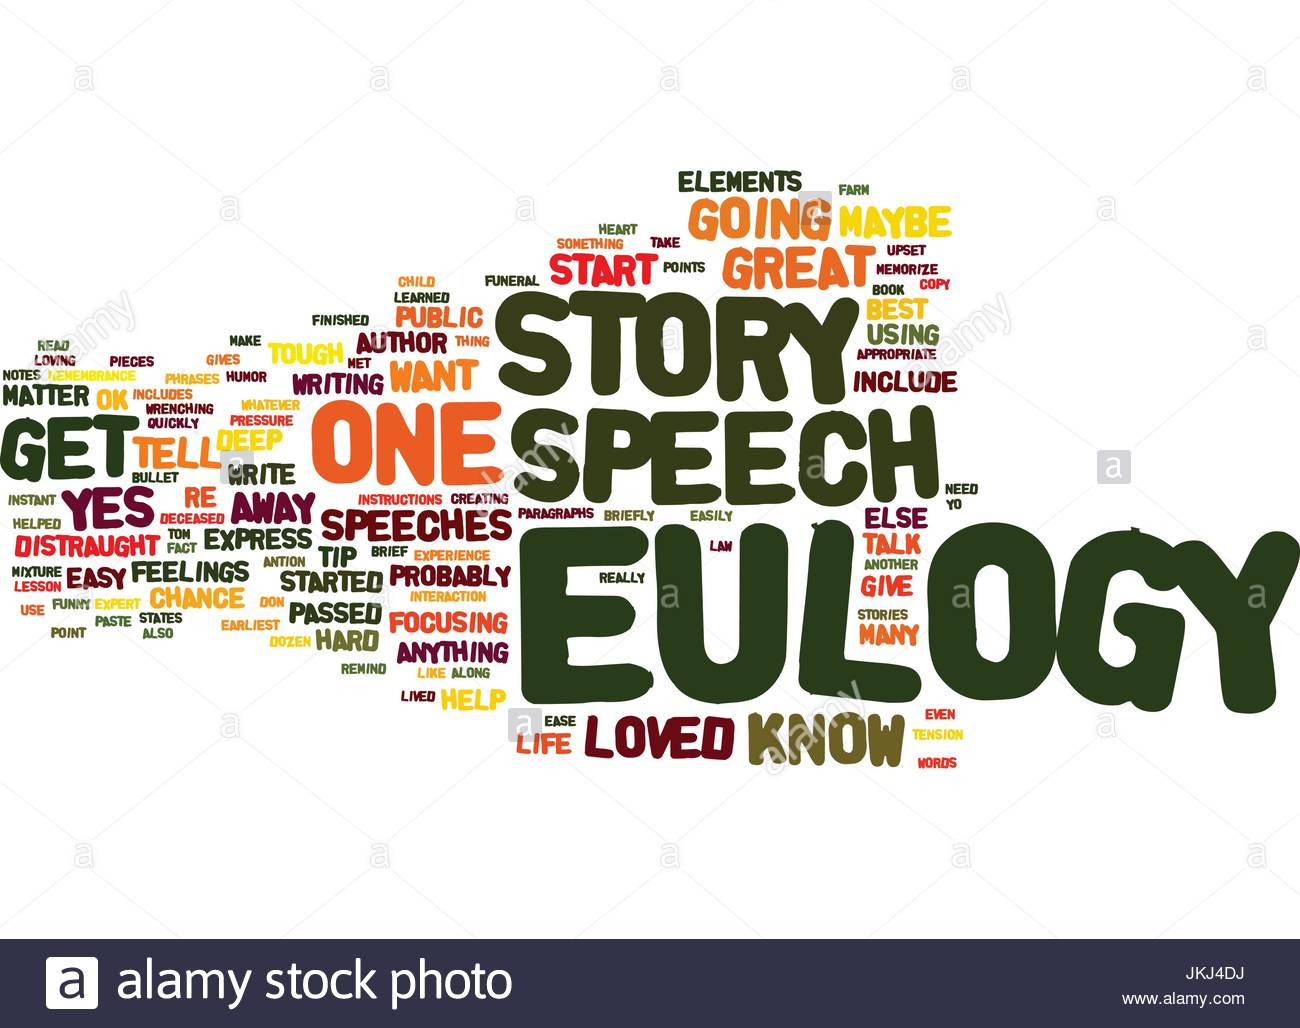 EULOGY SPEECHES USE A STORY TO HELP YOU GET STARTED Text 1300x1028